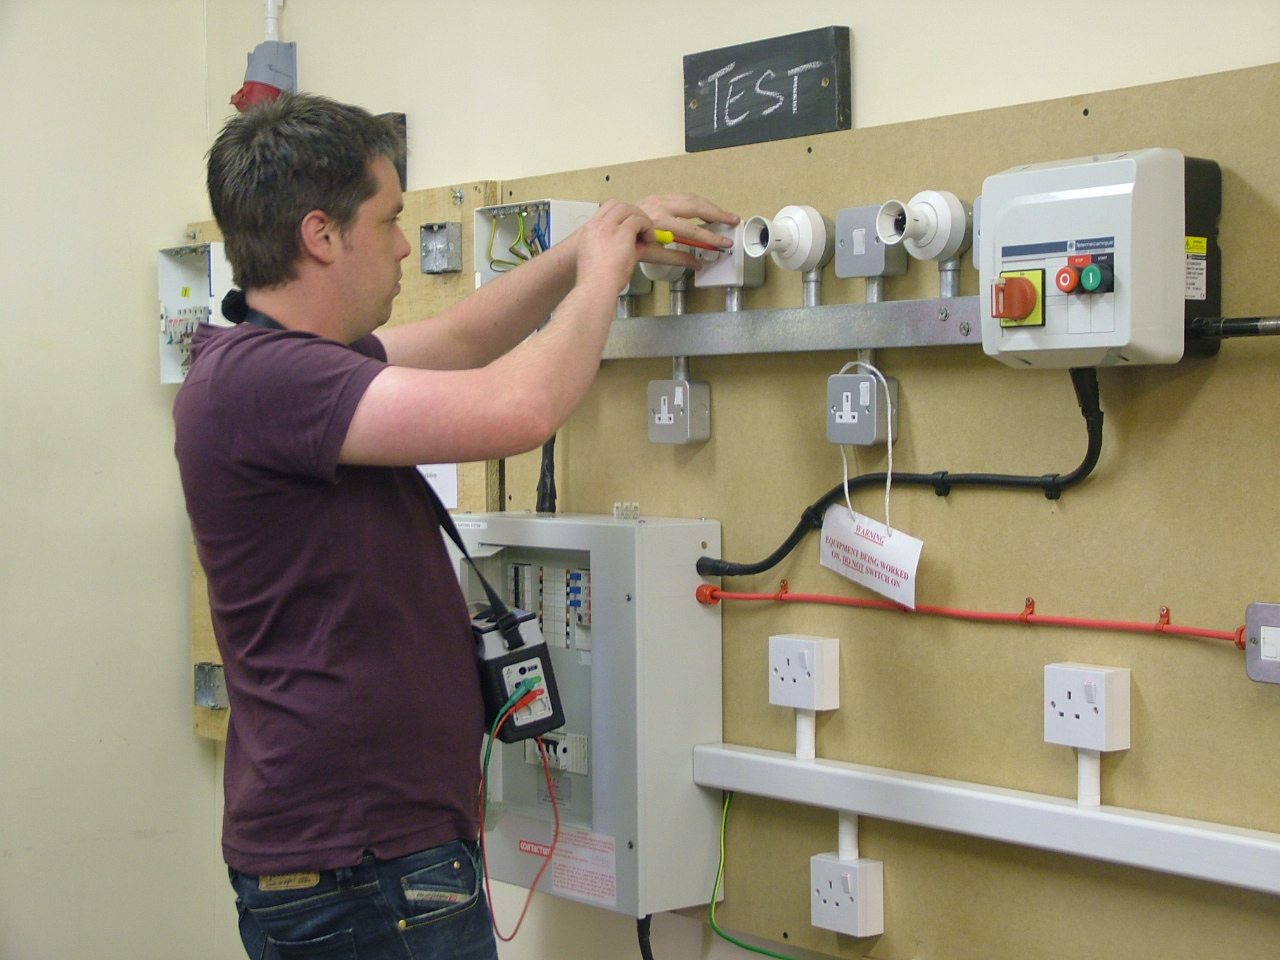 C&G 2395 Periodic Inspection &Testing Electrical Courses | The ...